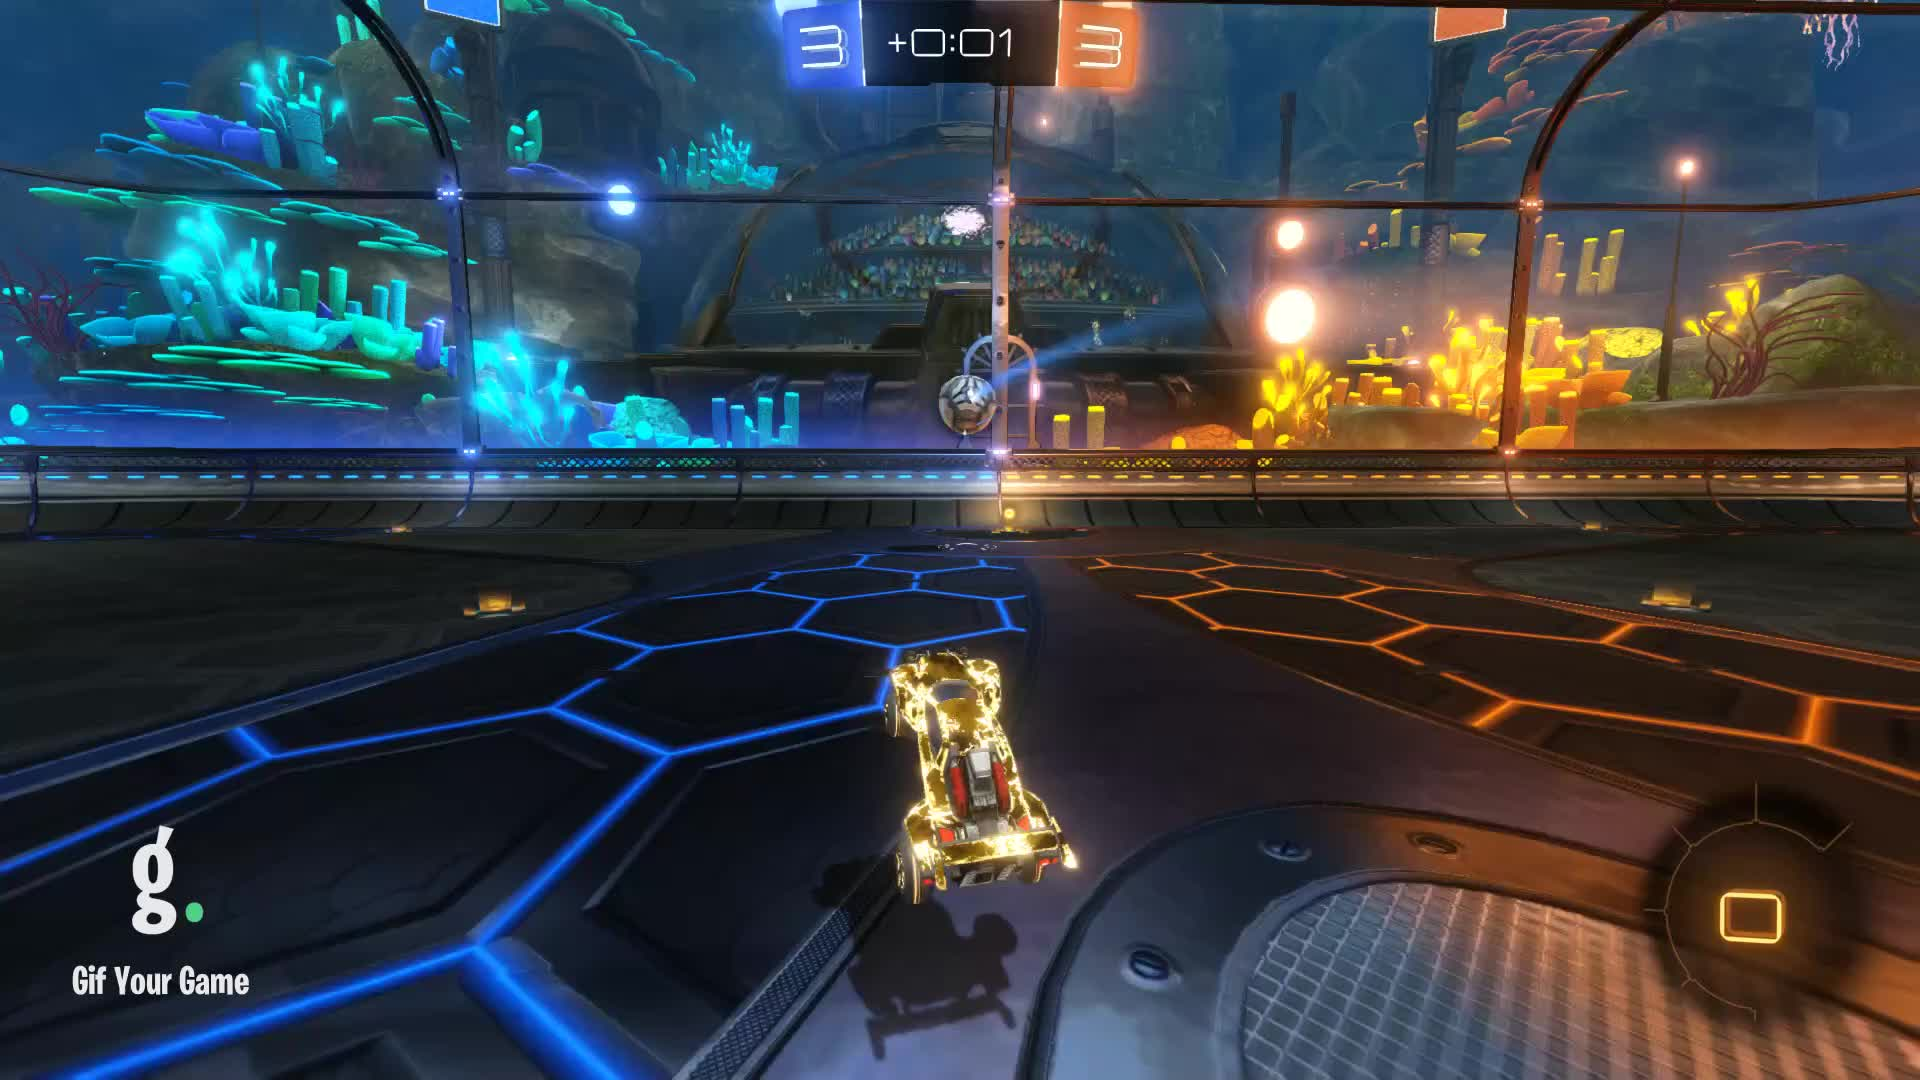 Absolutely, Gif Your Game, GifYourGame, Goal, Rocket League, RocketLeague, Goal 7: Absolutely GIFs